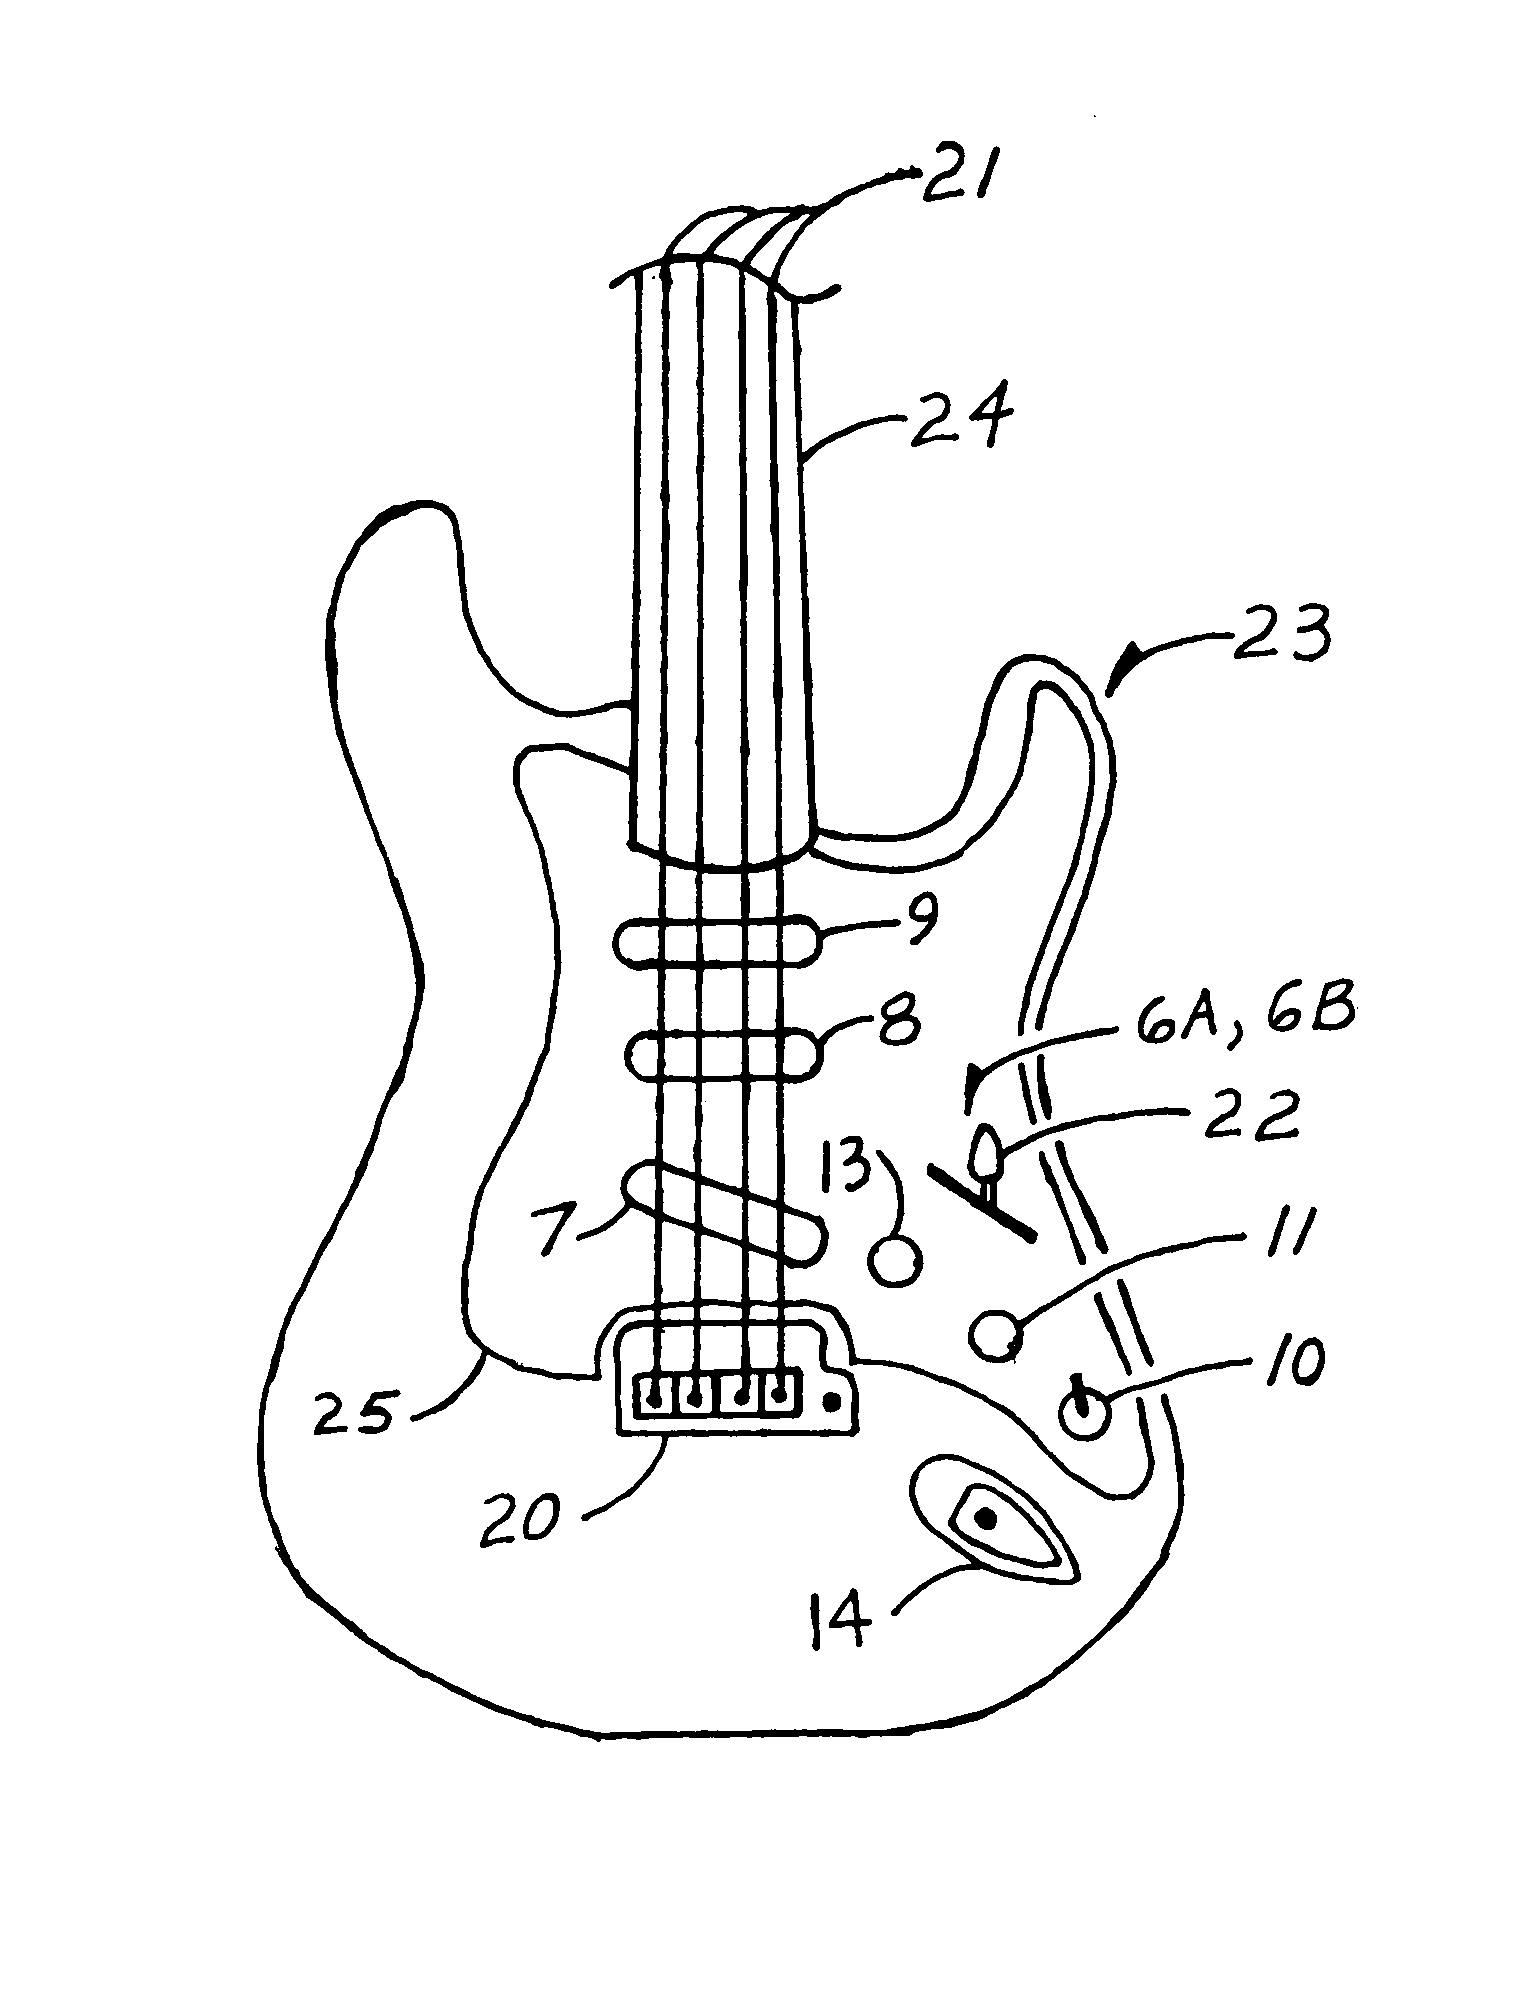 Carvin pickups wiring diagrams 2000 f 150 wiring diagrams generous carvin pickup wiring diagrams ideas electrical system us07999171 20110816 d00000 carvin pickup wiring diagrams carvin pickups wiring diagrams asfbconference2016 Image collections